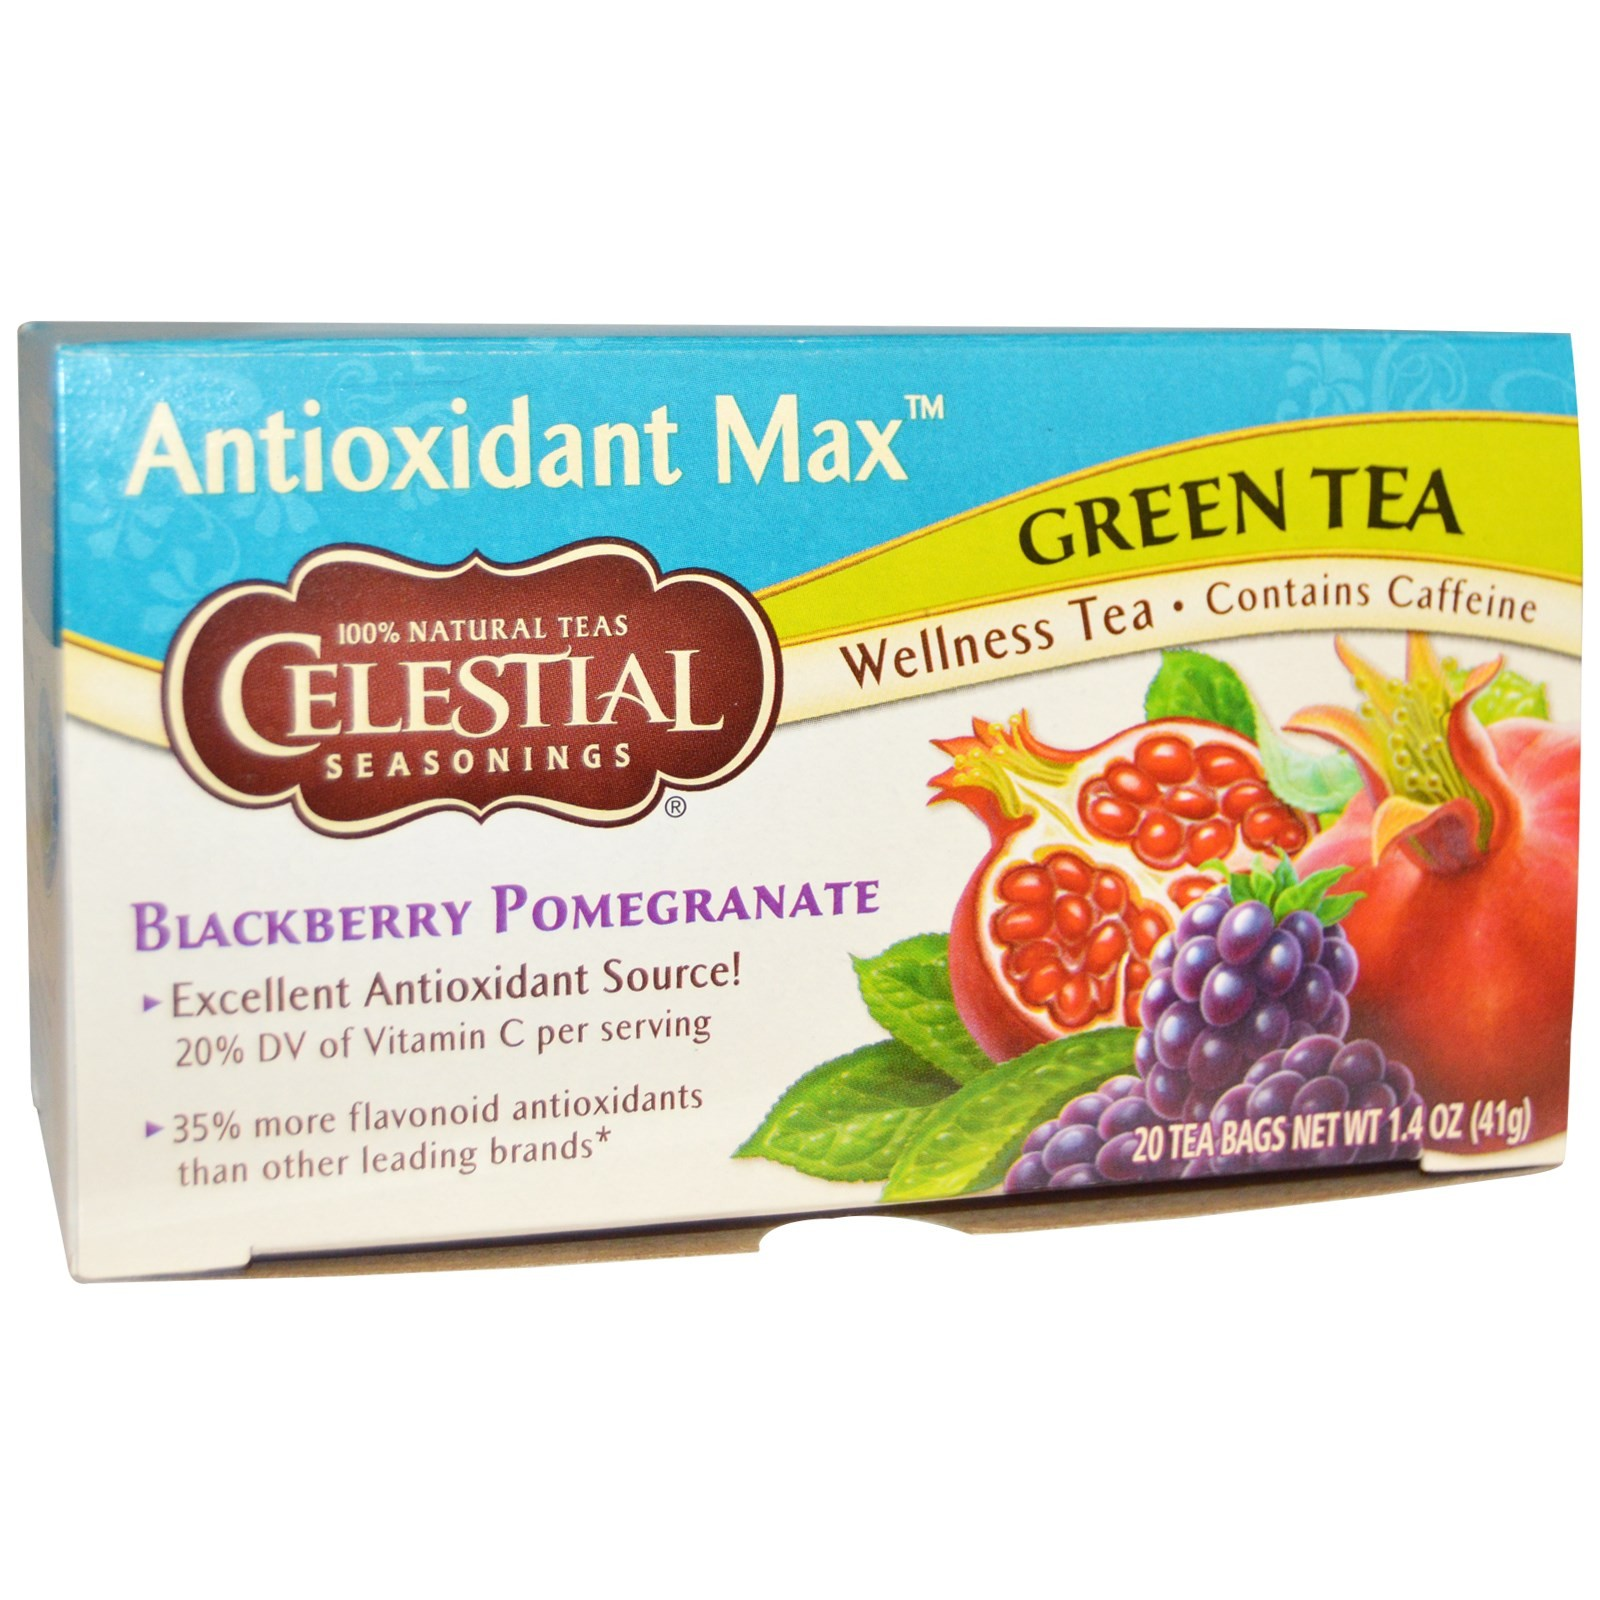 Antioxidant Max Green Tea Blackberry Pomegranate